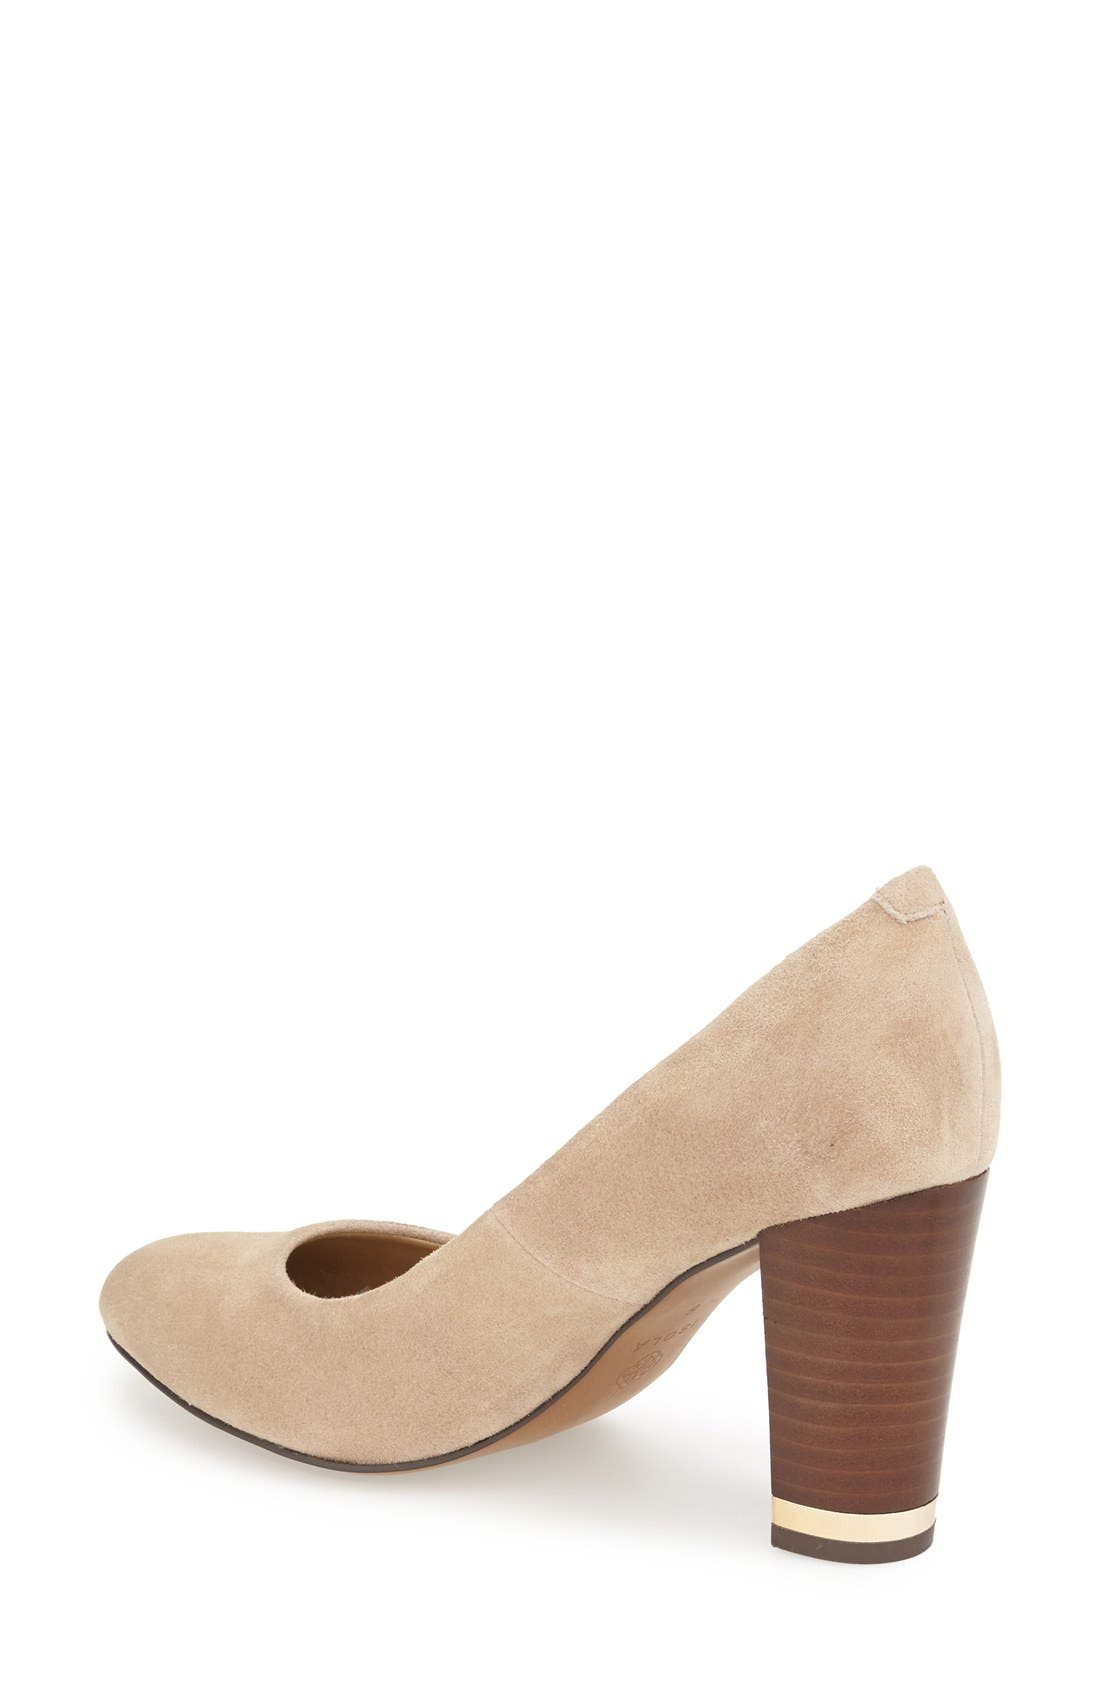 'Eleni II' Block Heel Pump,                             Alternate thumbnail 12, color,